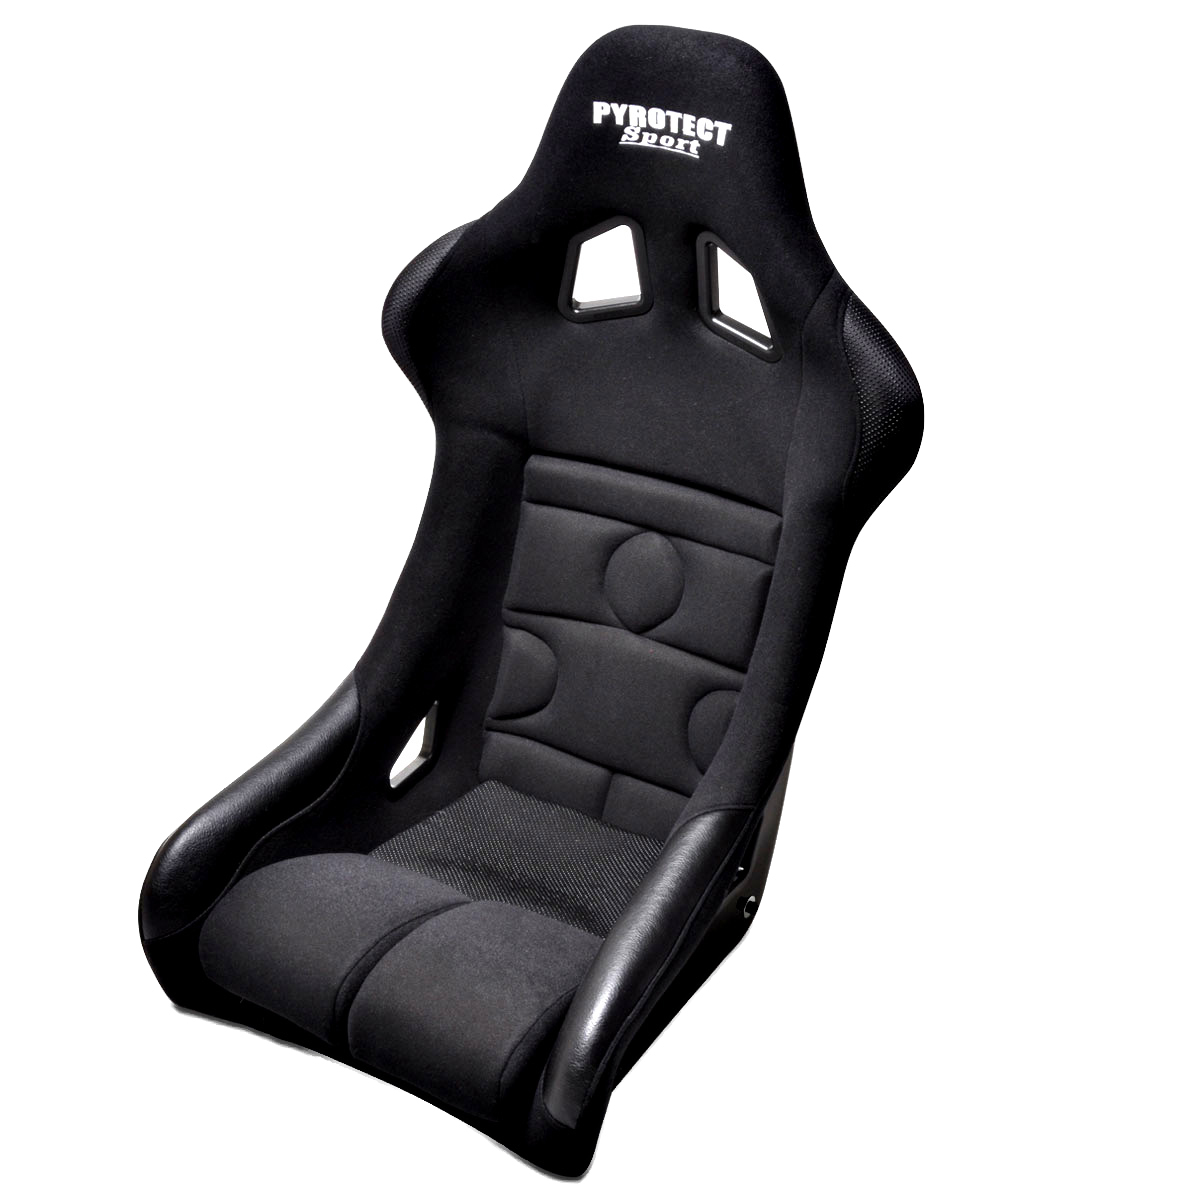 Pyrotect SEA-1000-B Seat, Sport Race, Side Bolsters, Harness Openings, Fiberglass Composite, Fabric, Black, Each